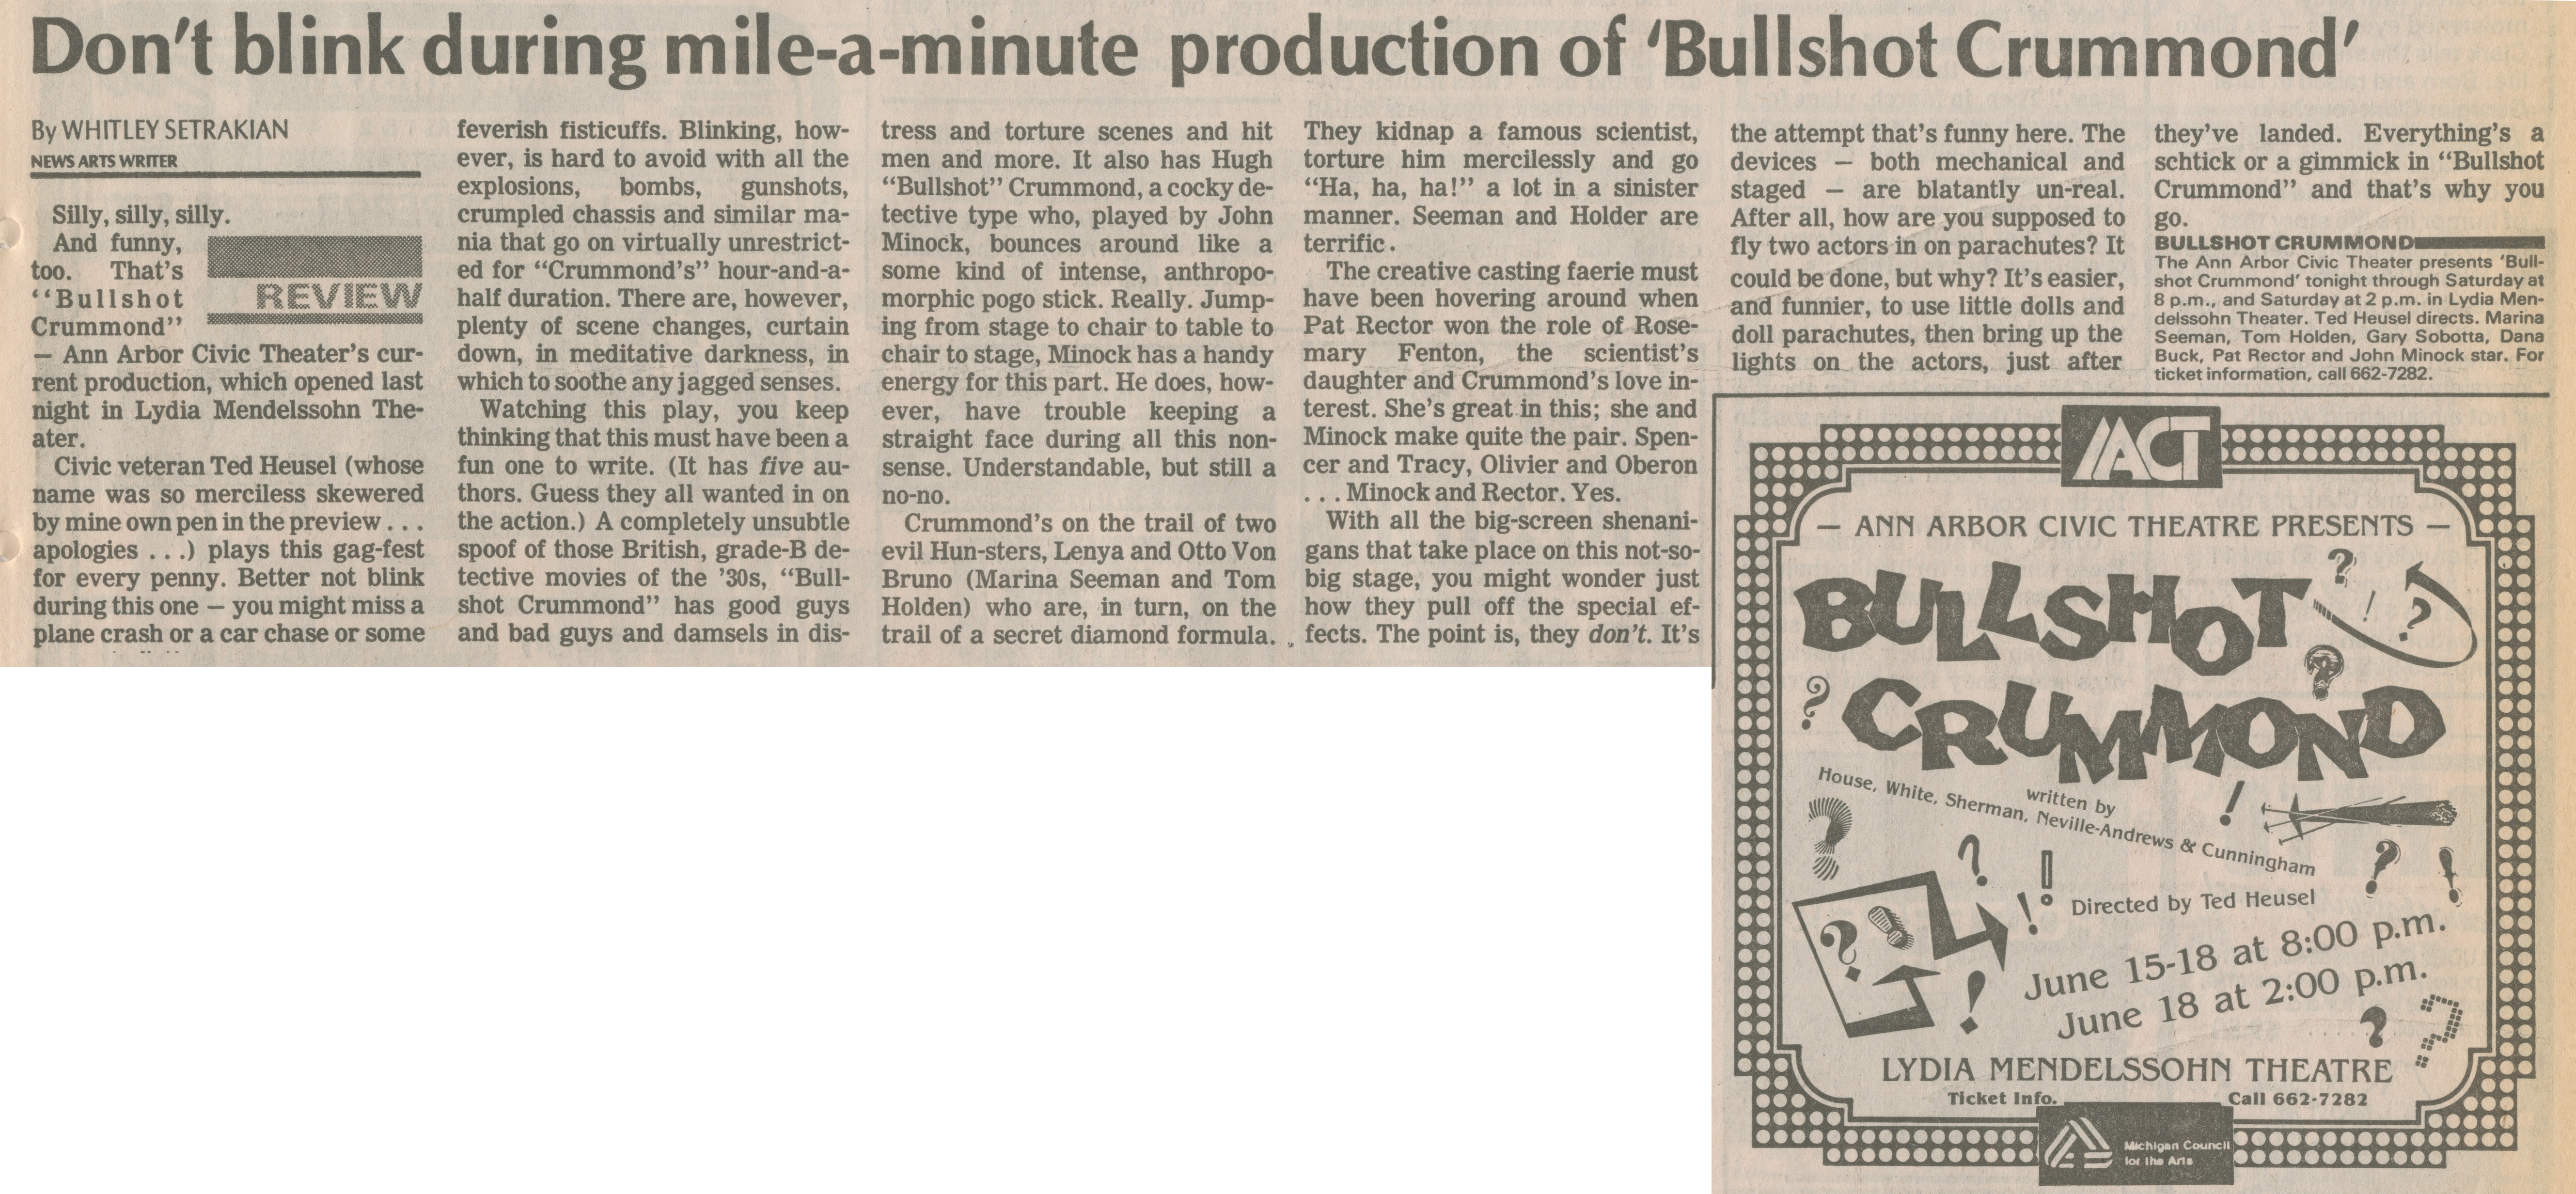 Don't Blink During Mile-a-Minute Production Of 'Bullshot Crummond' image